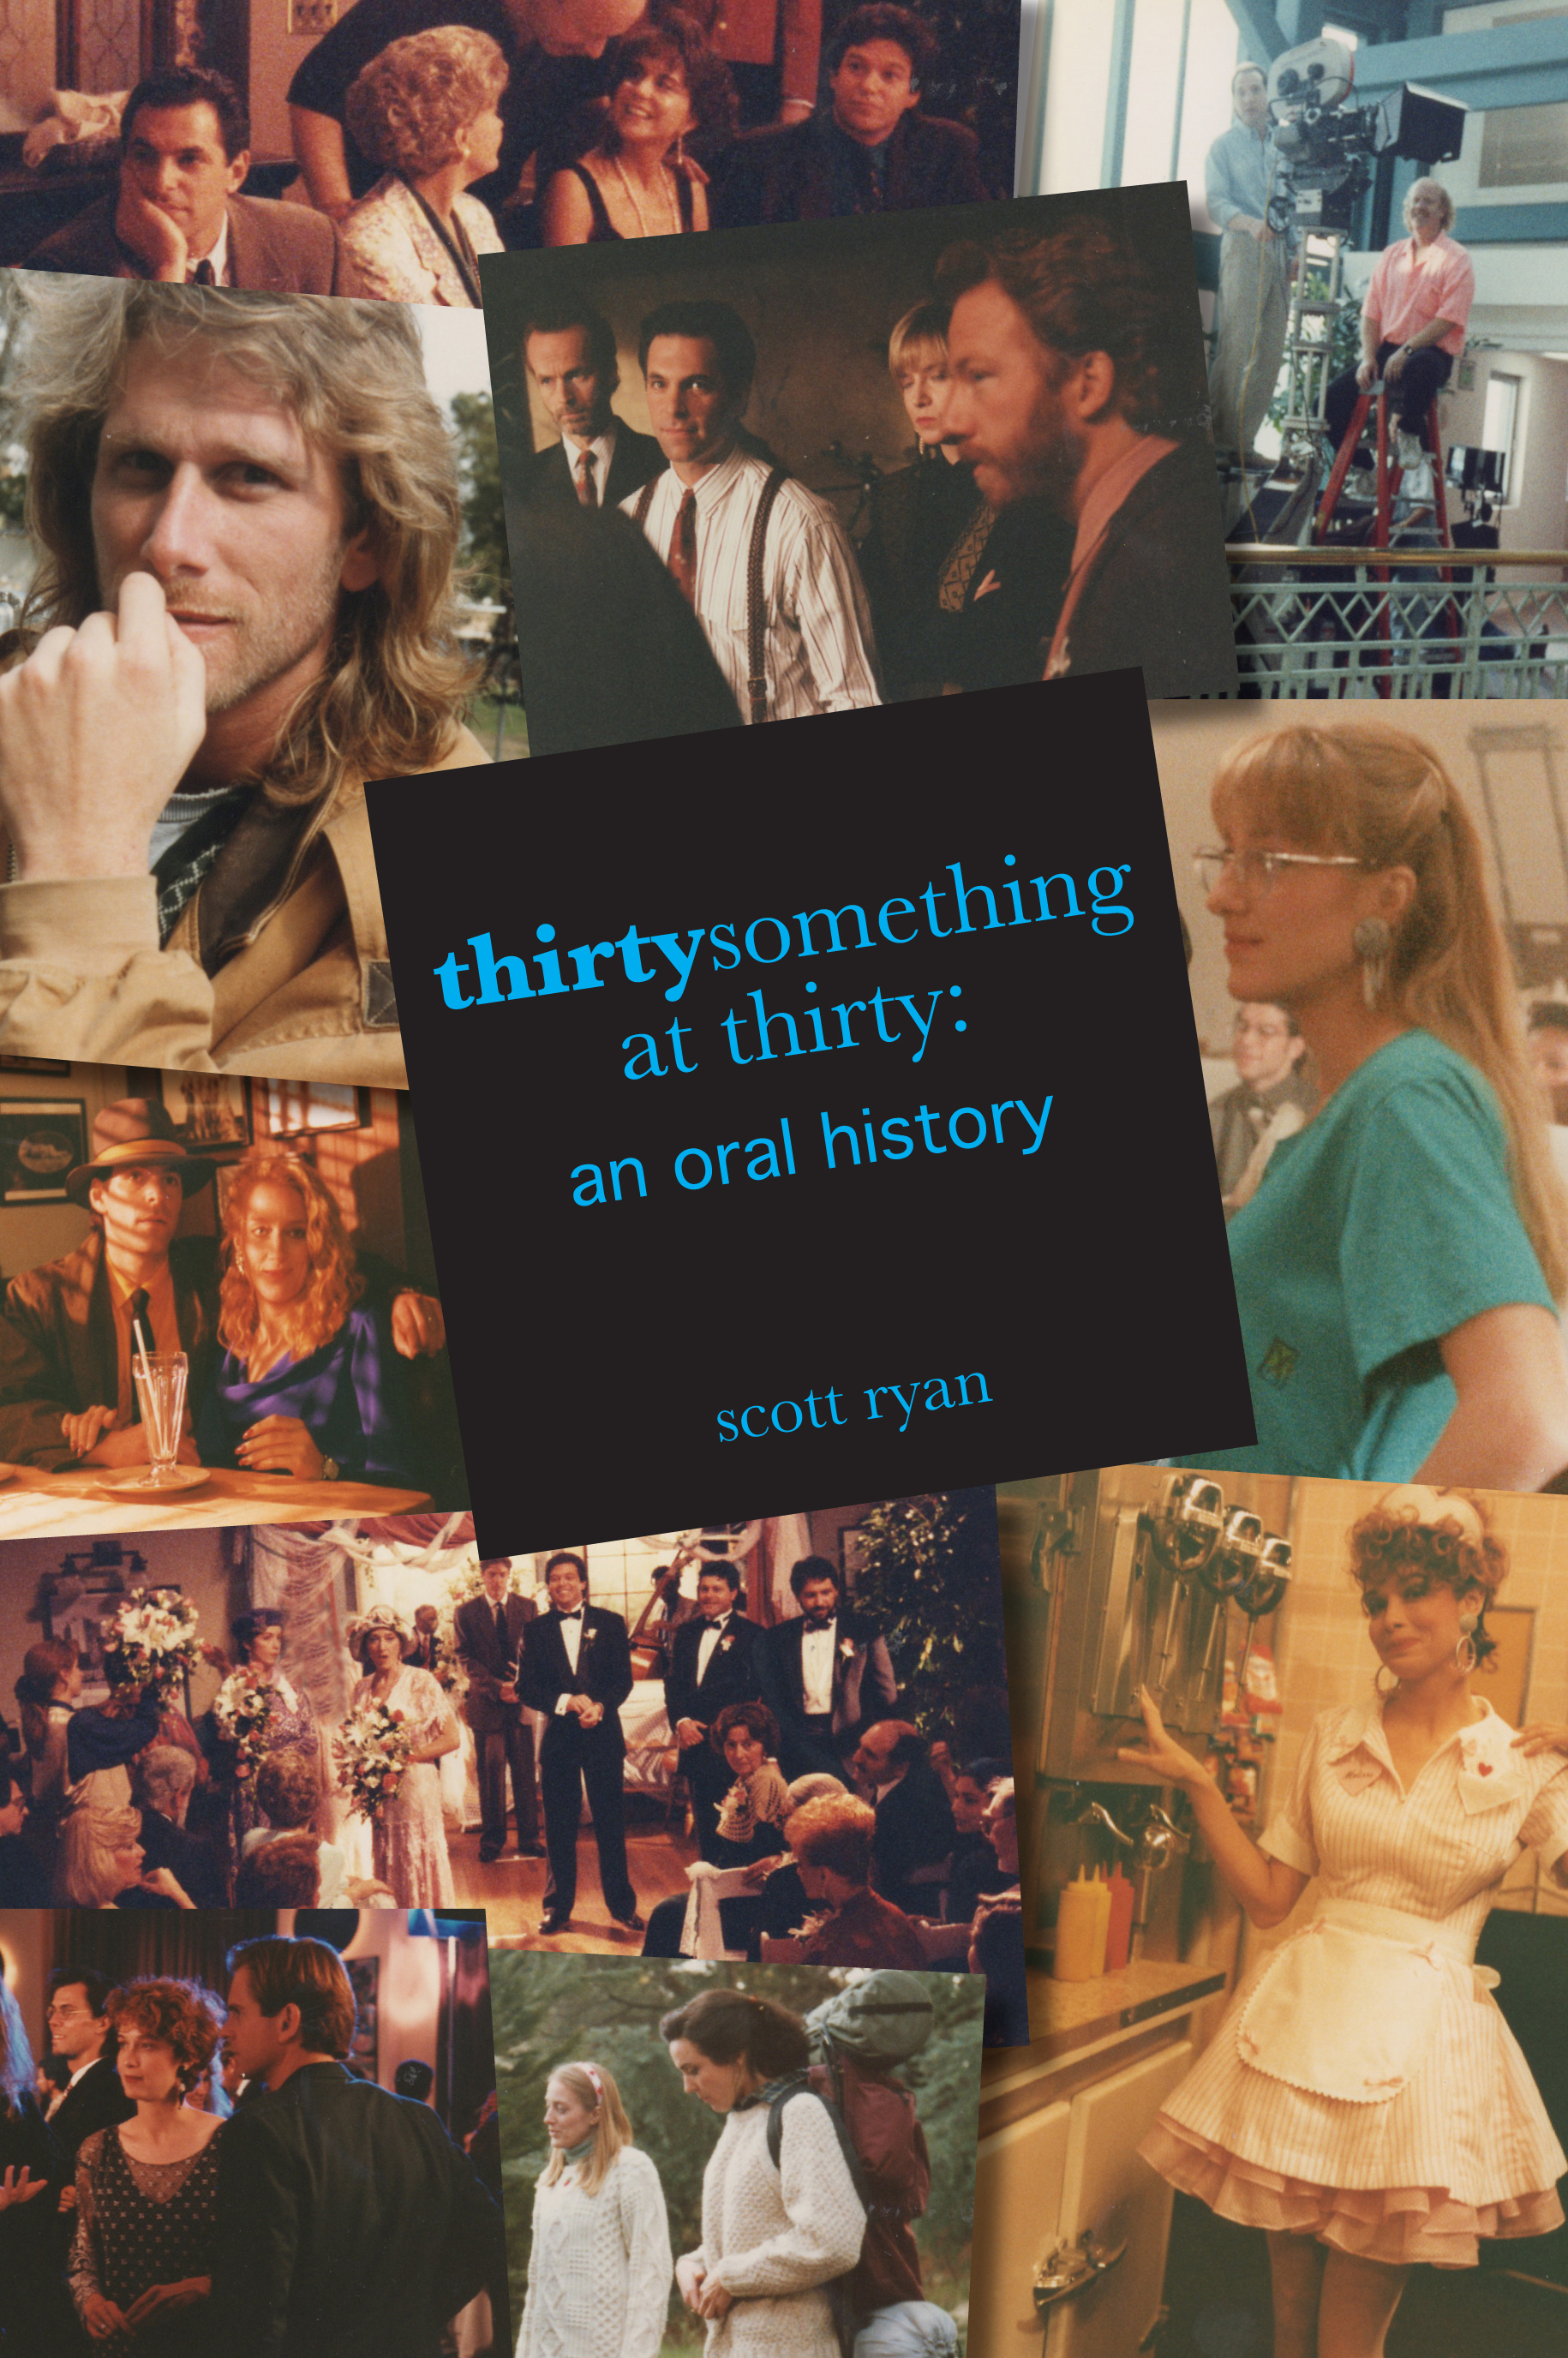 Order thirtysomething at thirty: an oral history